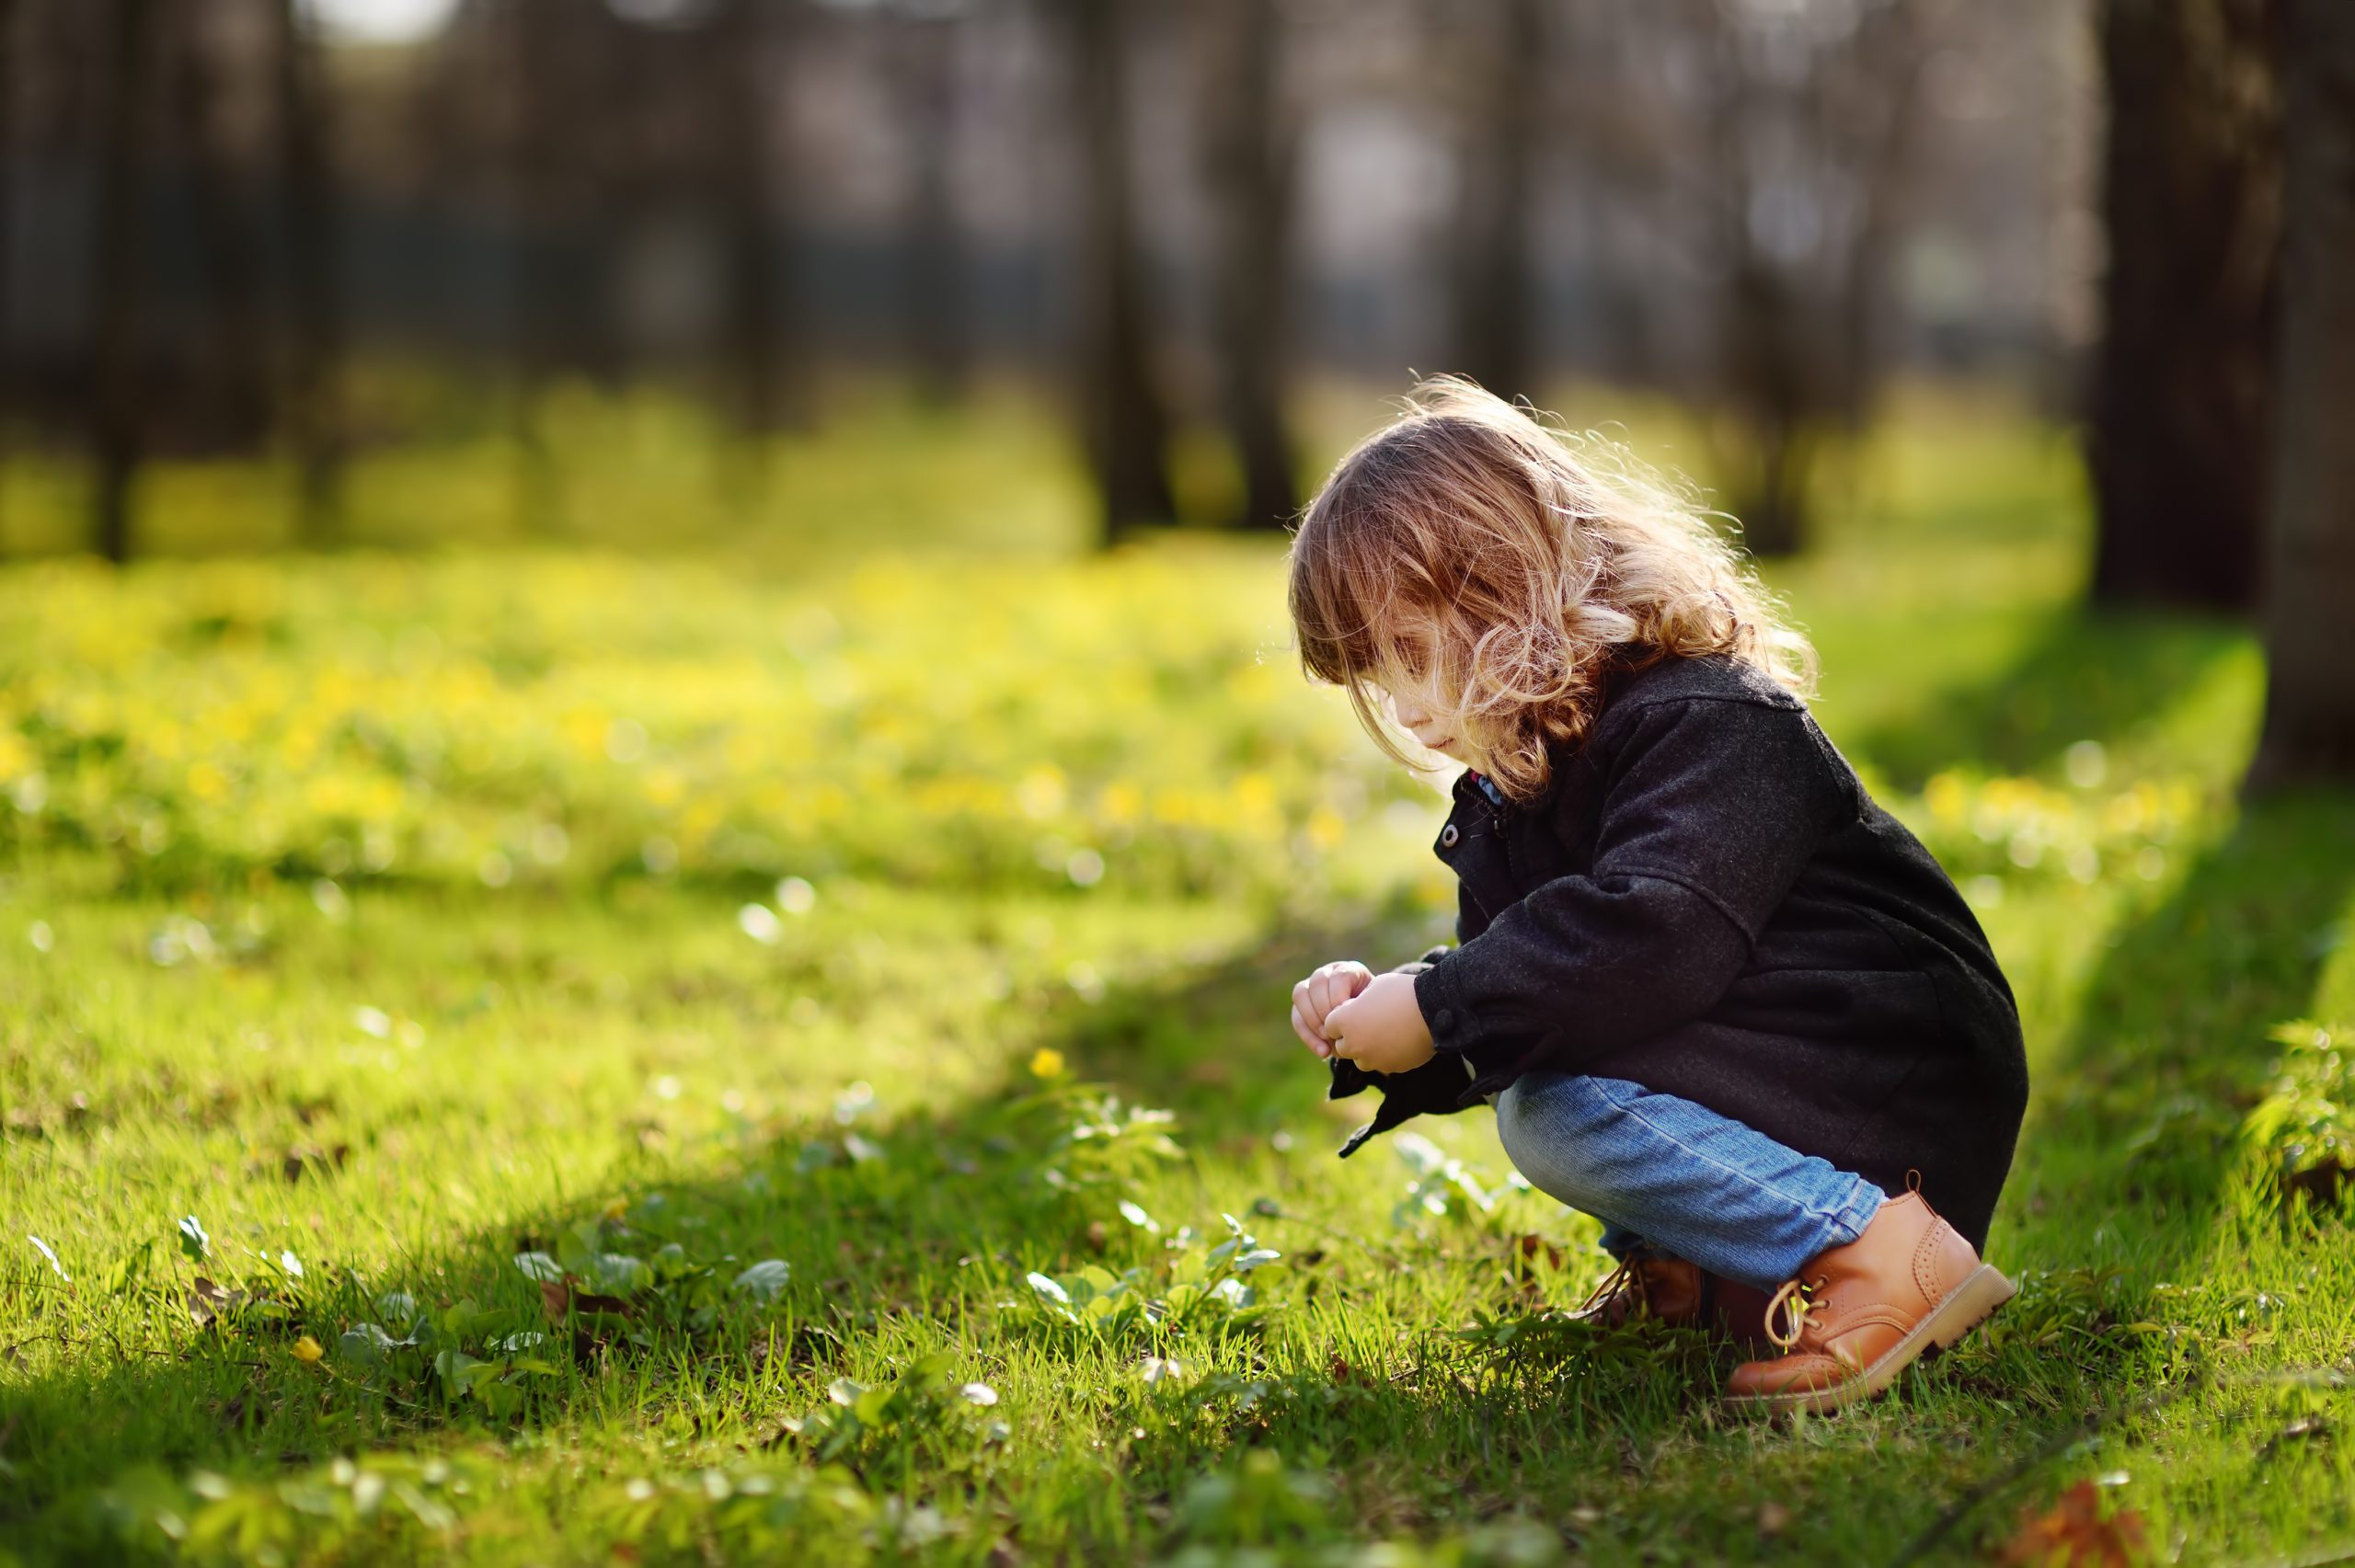 Sensitive Children need accommodations to lessen the unexpected sources of irritation. Find out the top 6 sources and how to help reduce them #spd #sensitivechild #autism #asd #parenting